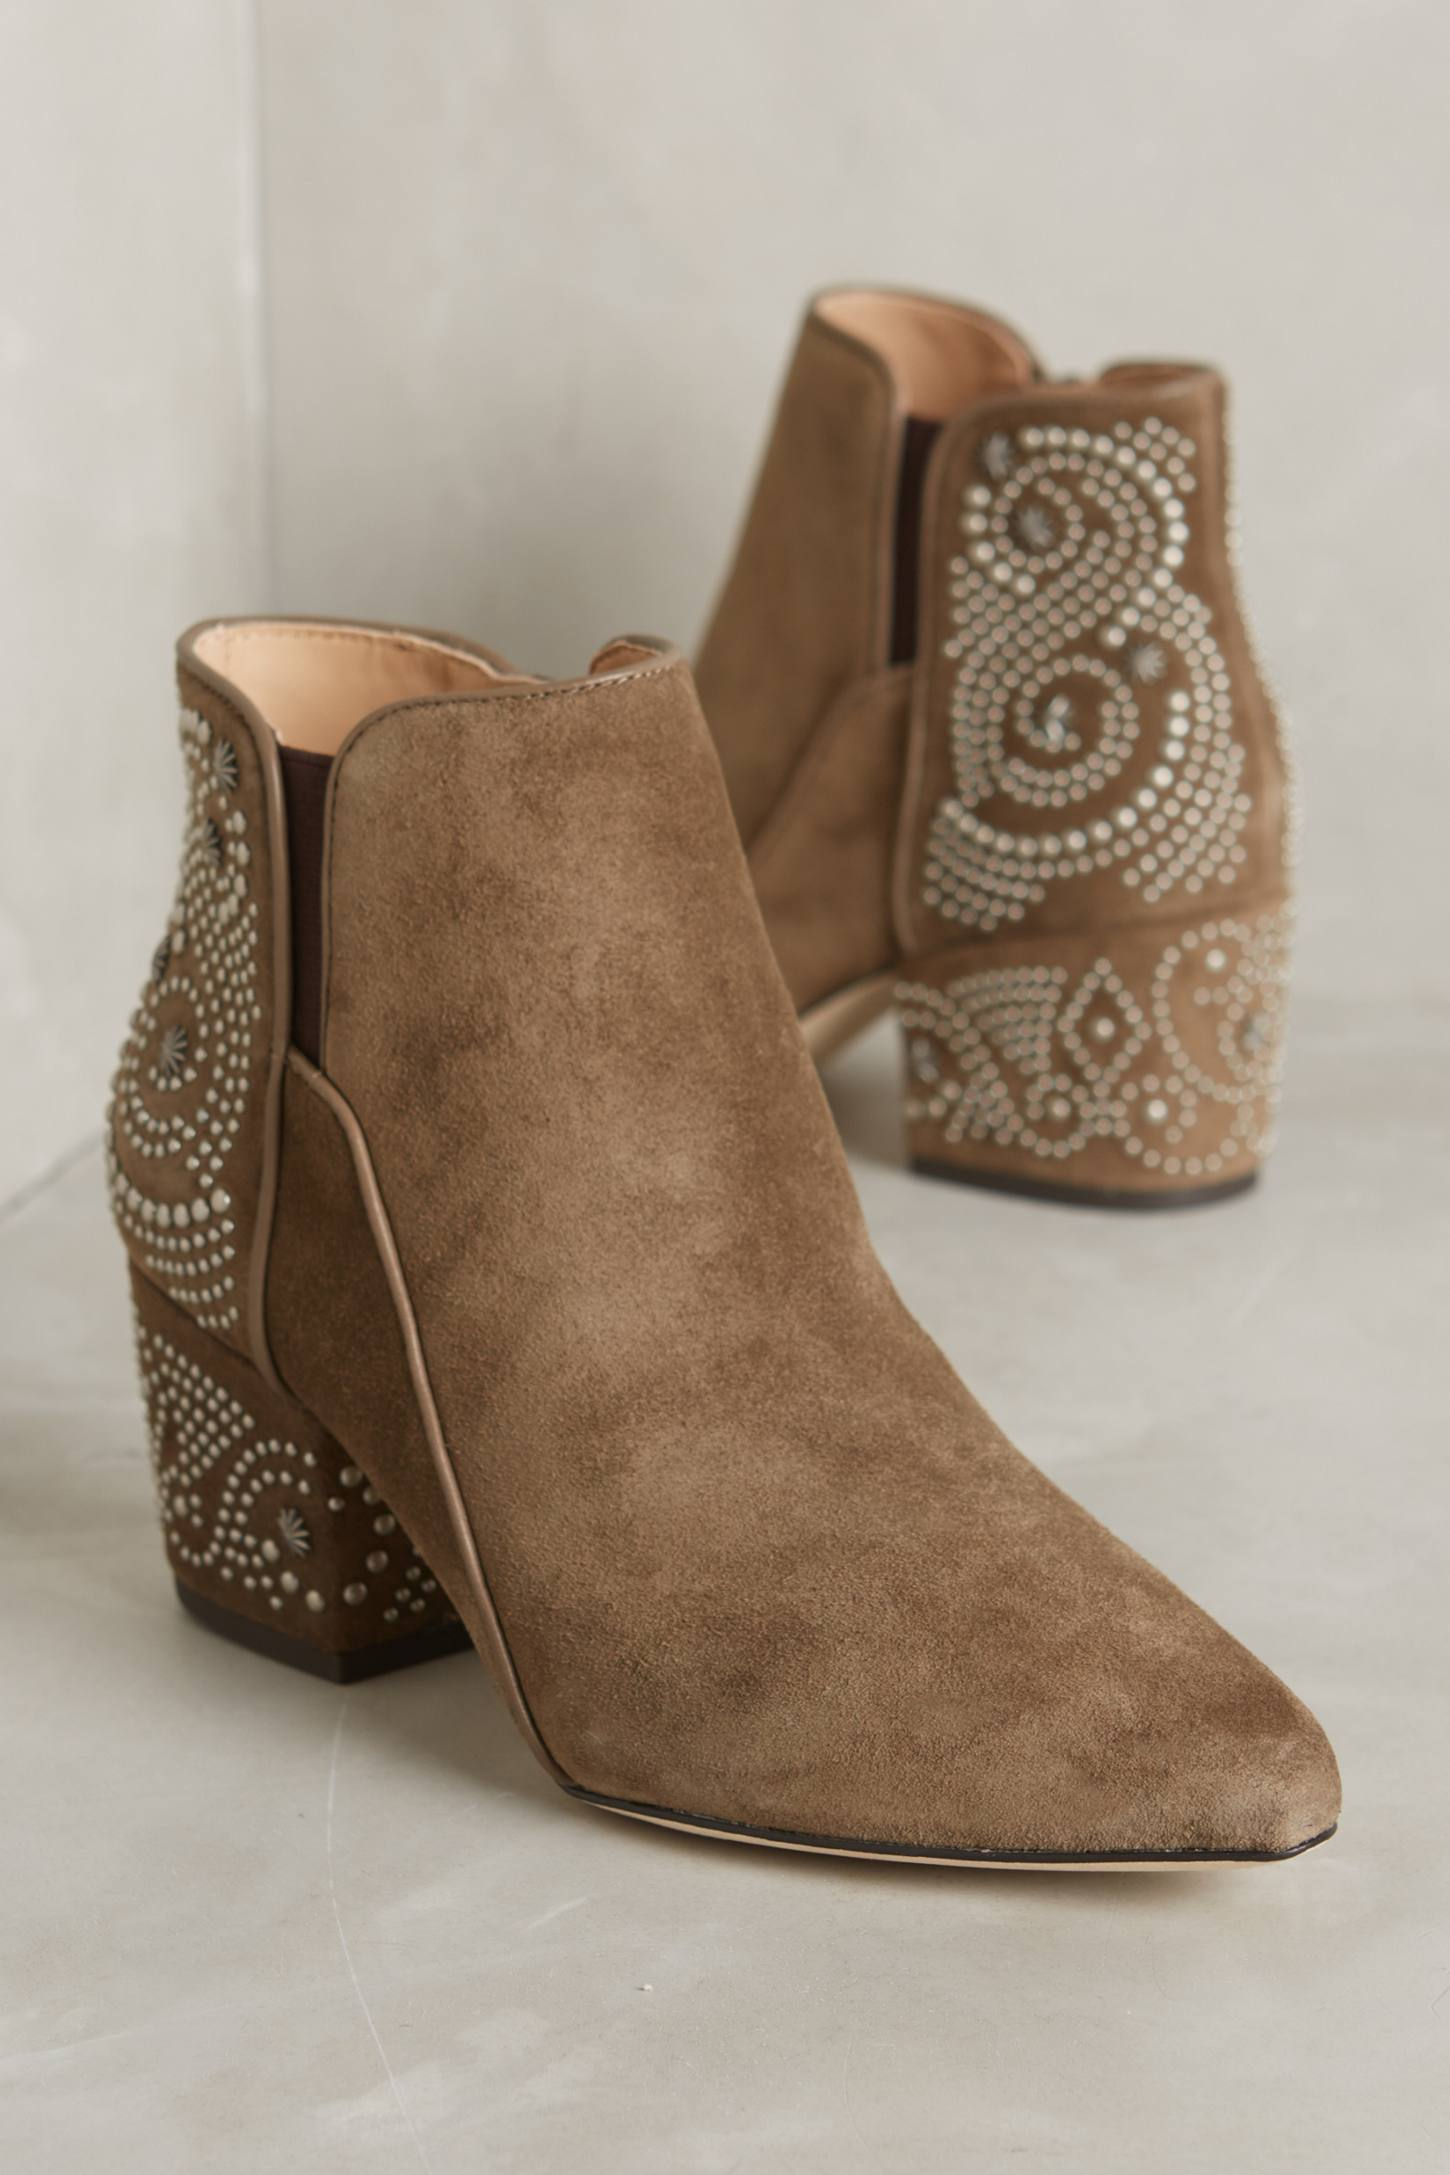 Cynn Booties by Belle by Sigerson Morrison